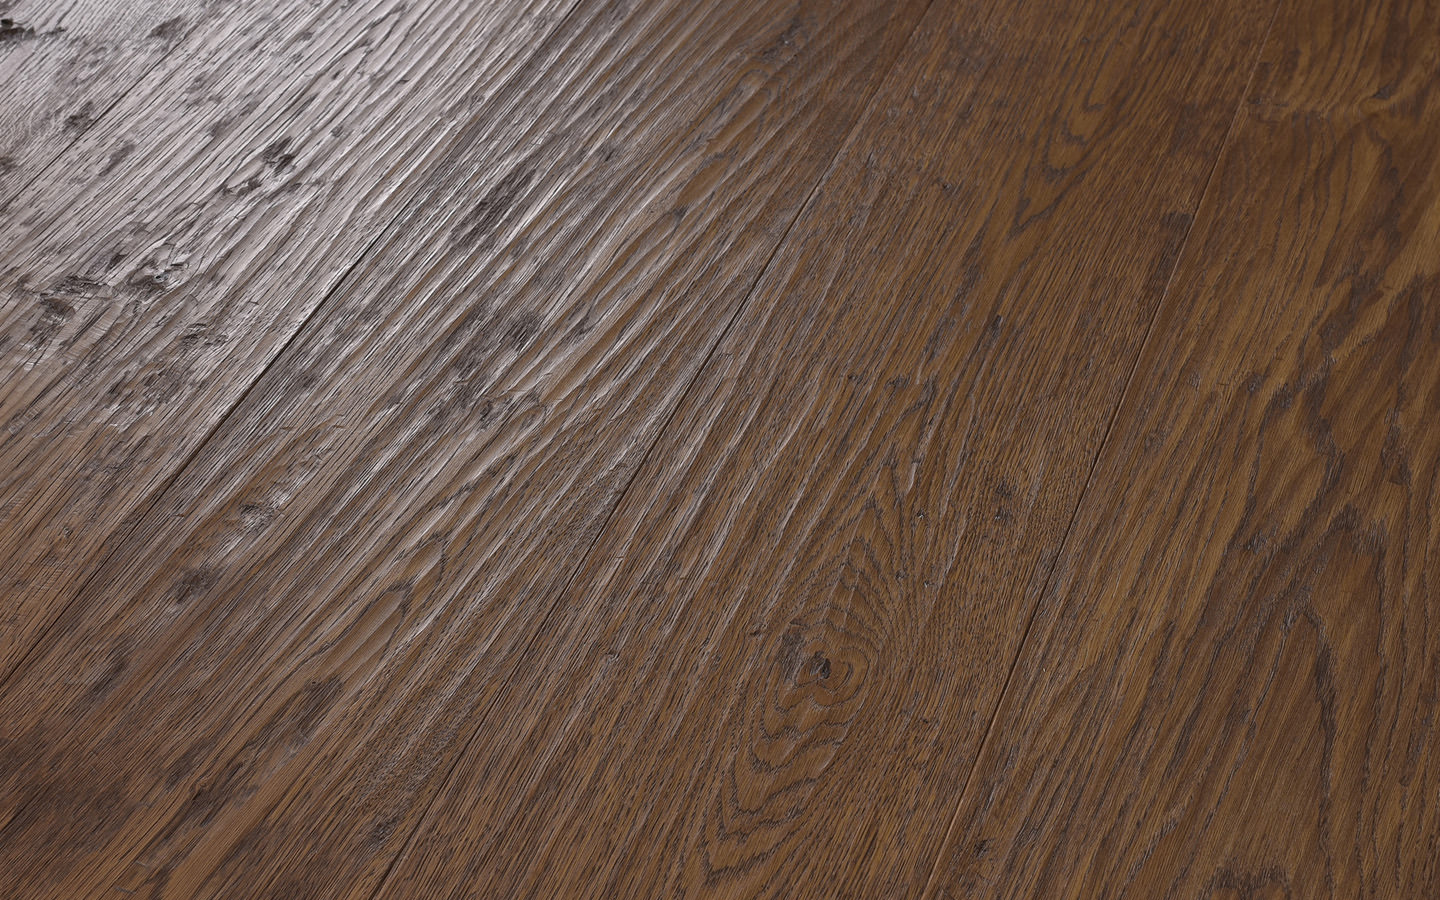 Château by adler - Oak Grenoble standard hand scrapped color oiled - 19 x 180-350 x 1800-5000 mm